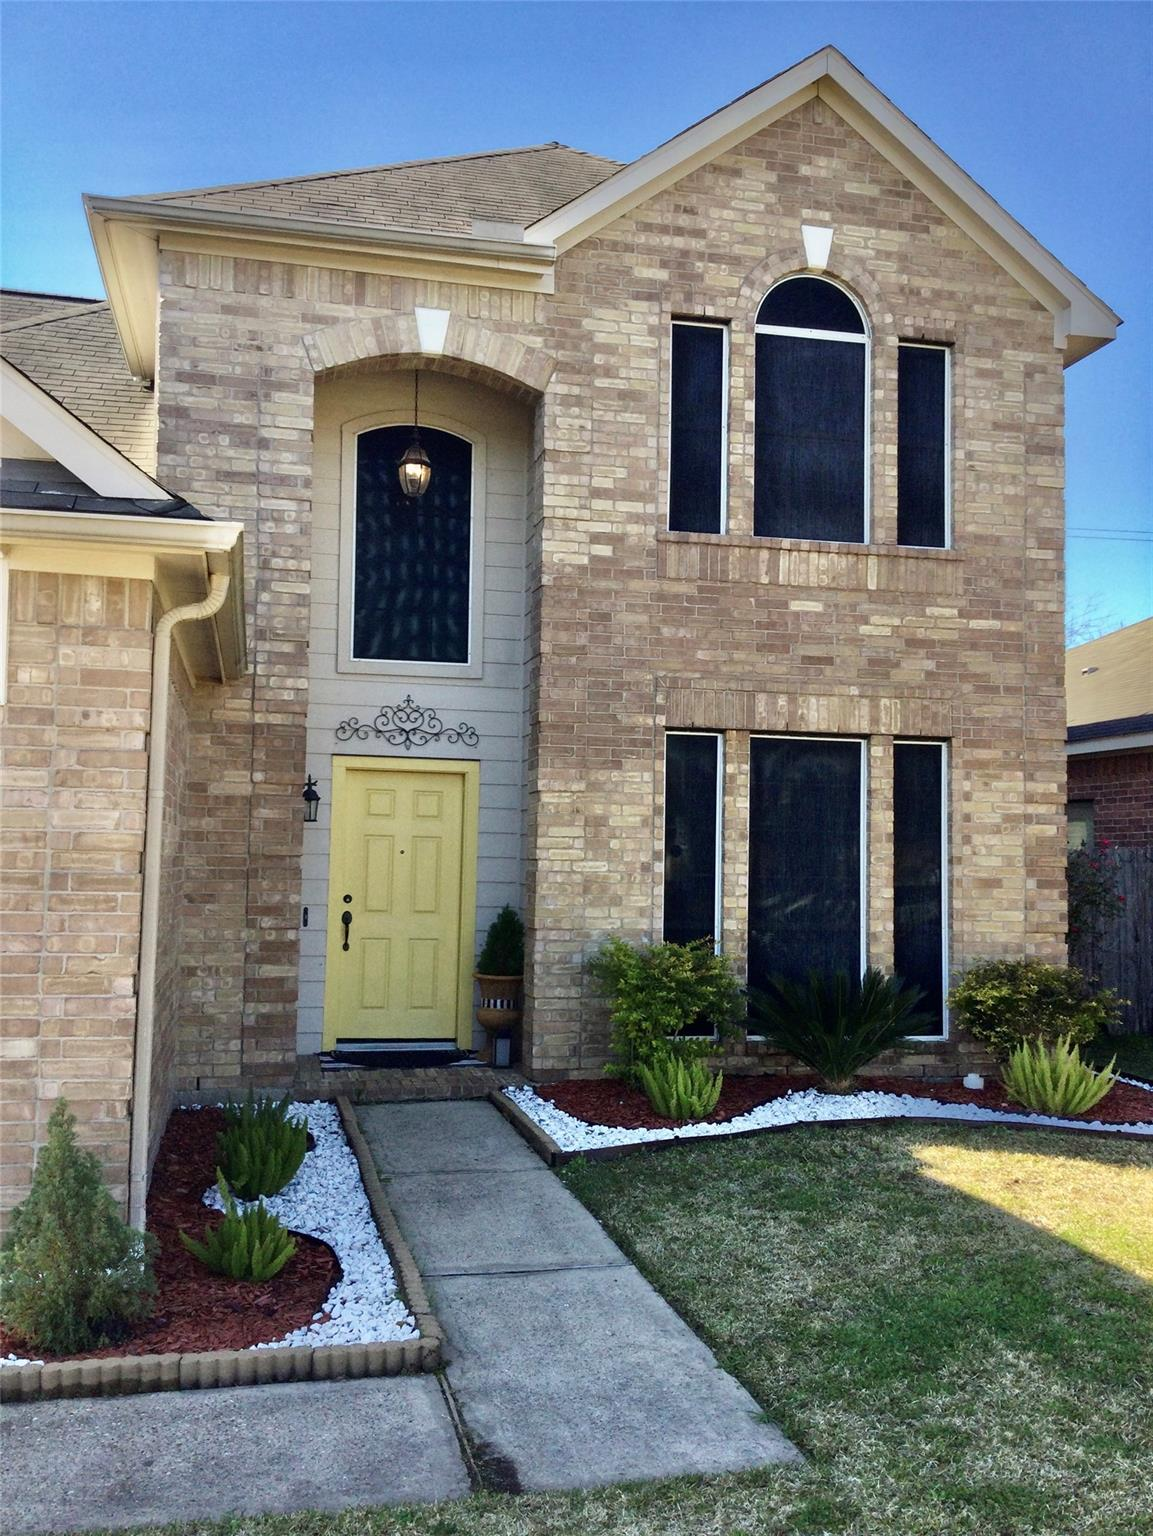 8619 W Highlands Crossing Property Photo - Highlands, TX real estate listing